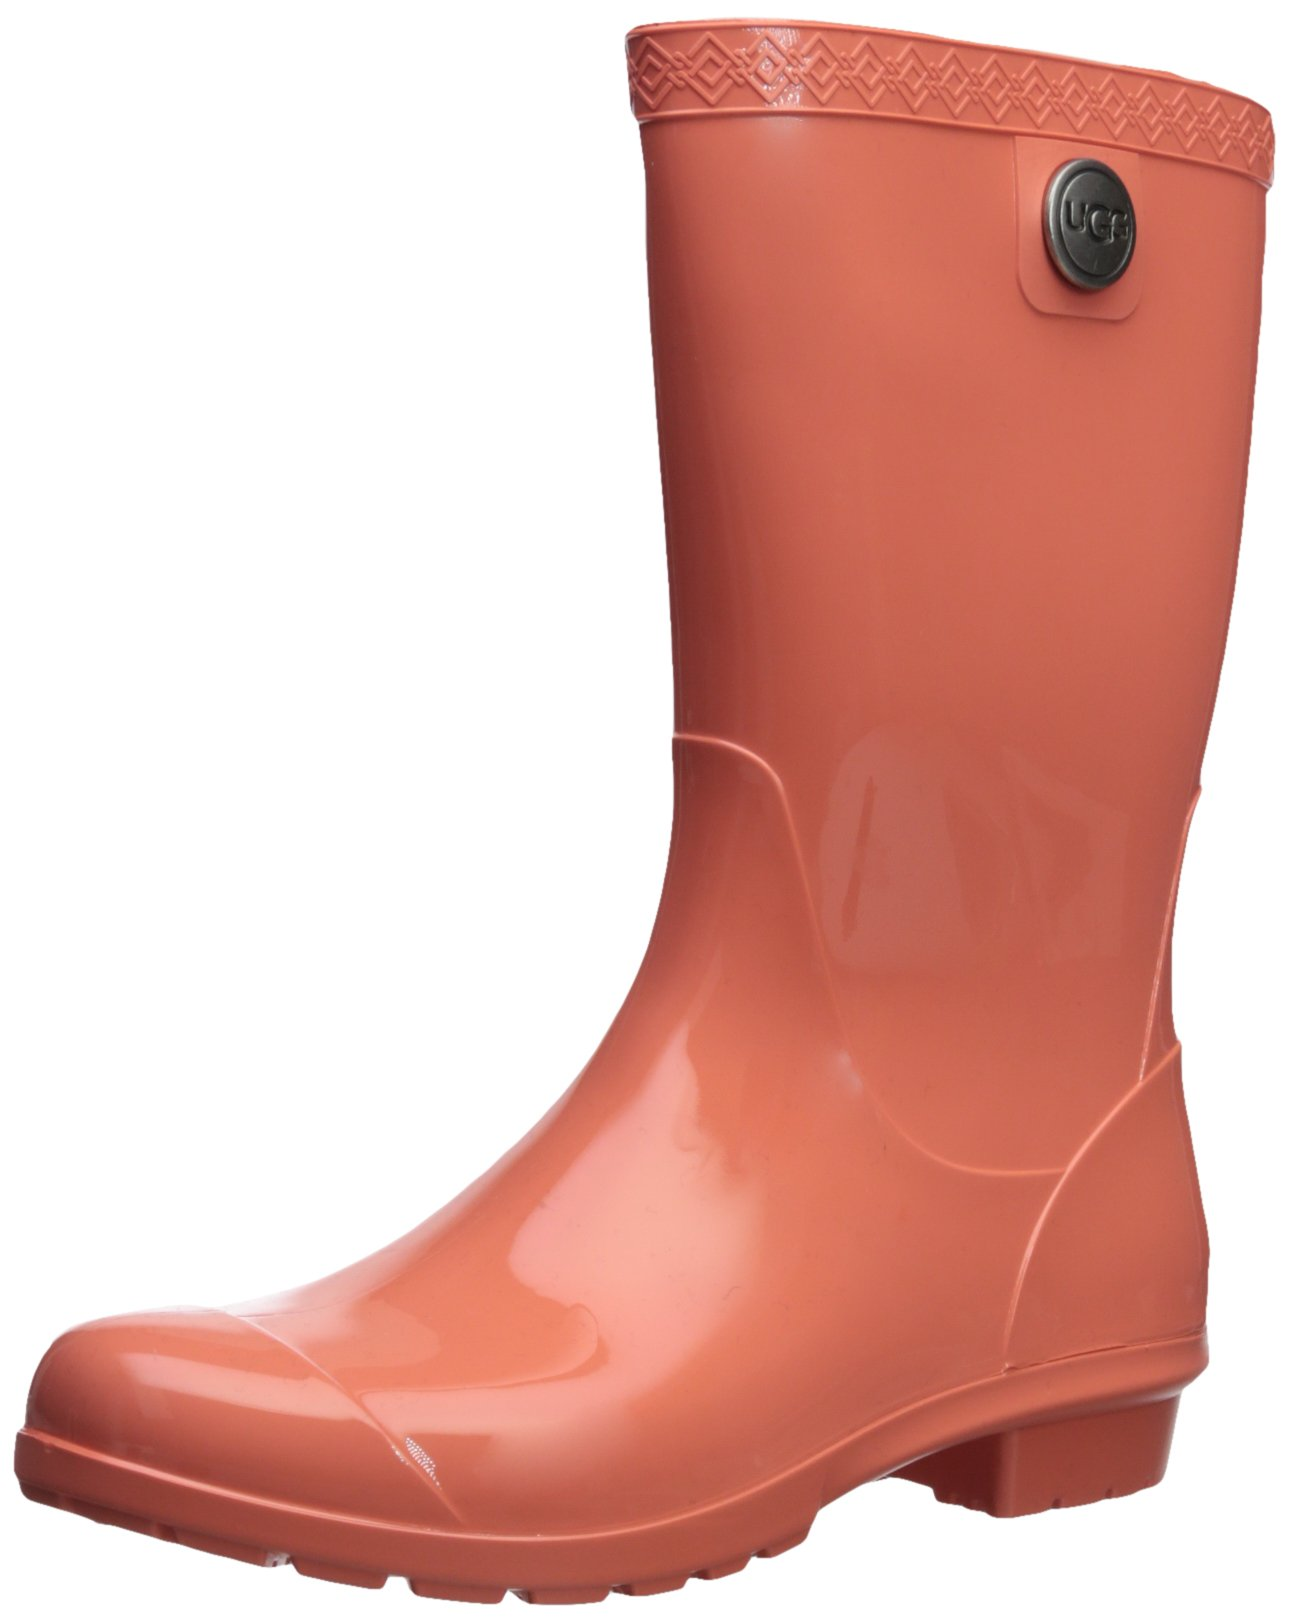 UGG Women's Sienna Rain Boot, Vibrant Coral, 9 M US